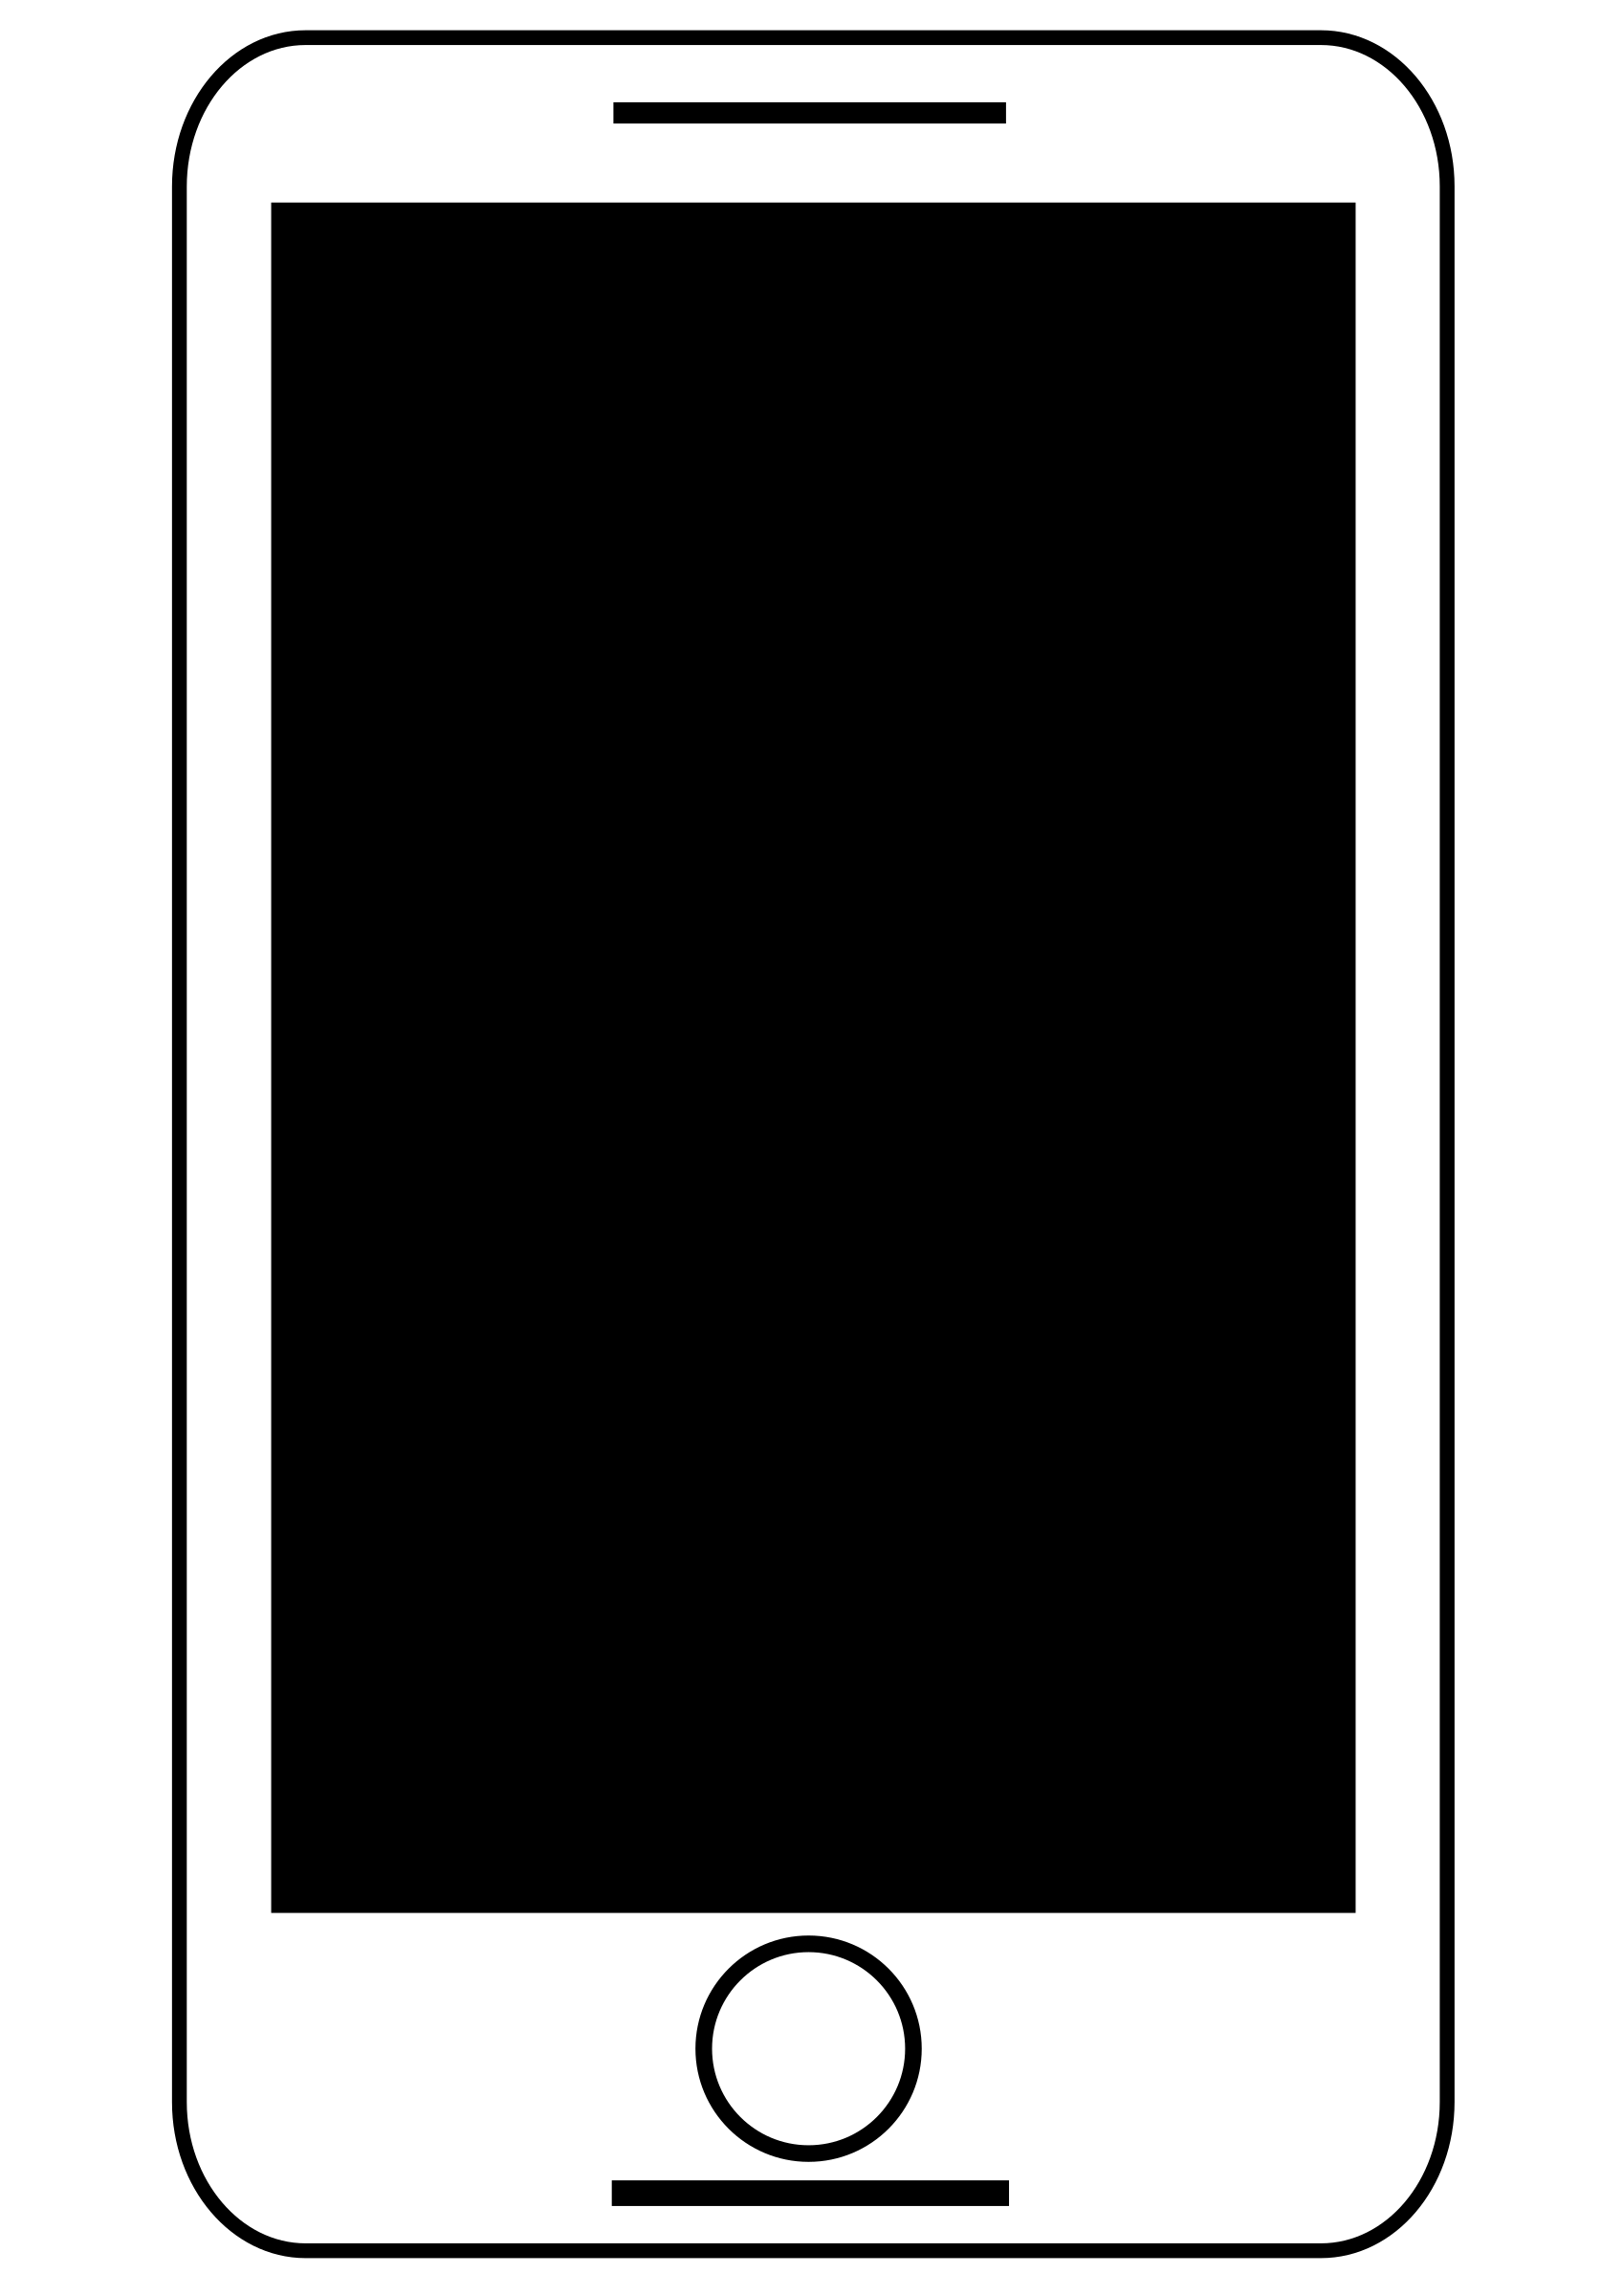 Smartphone clipart black and white 3 » Clipart Station